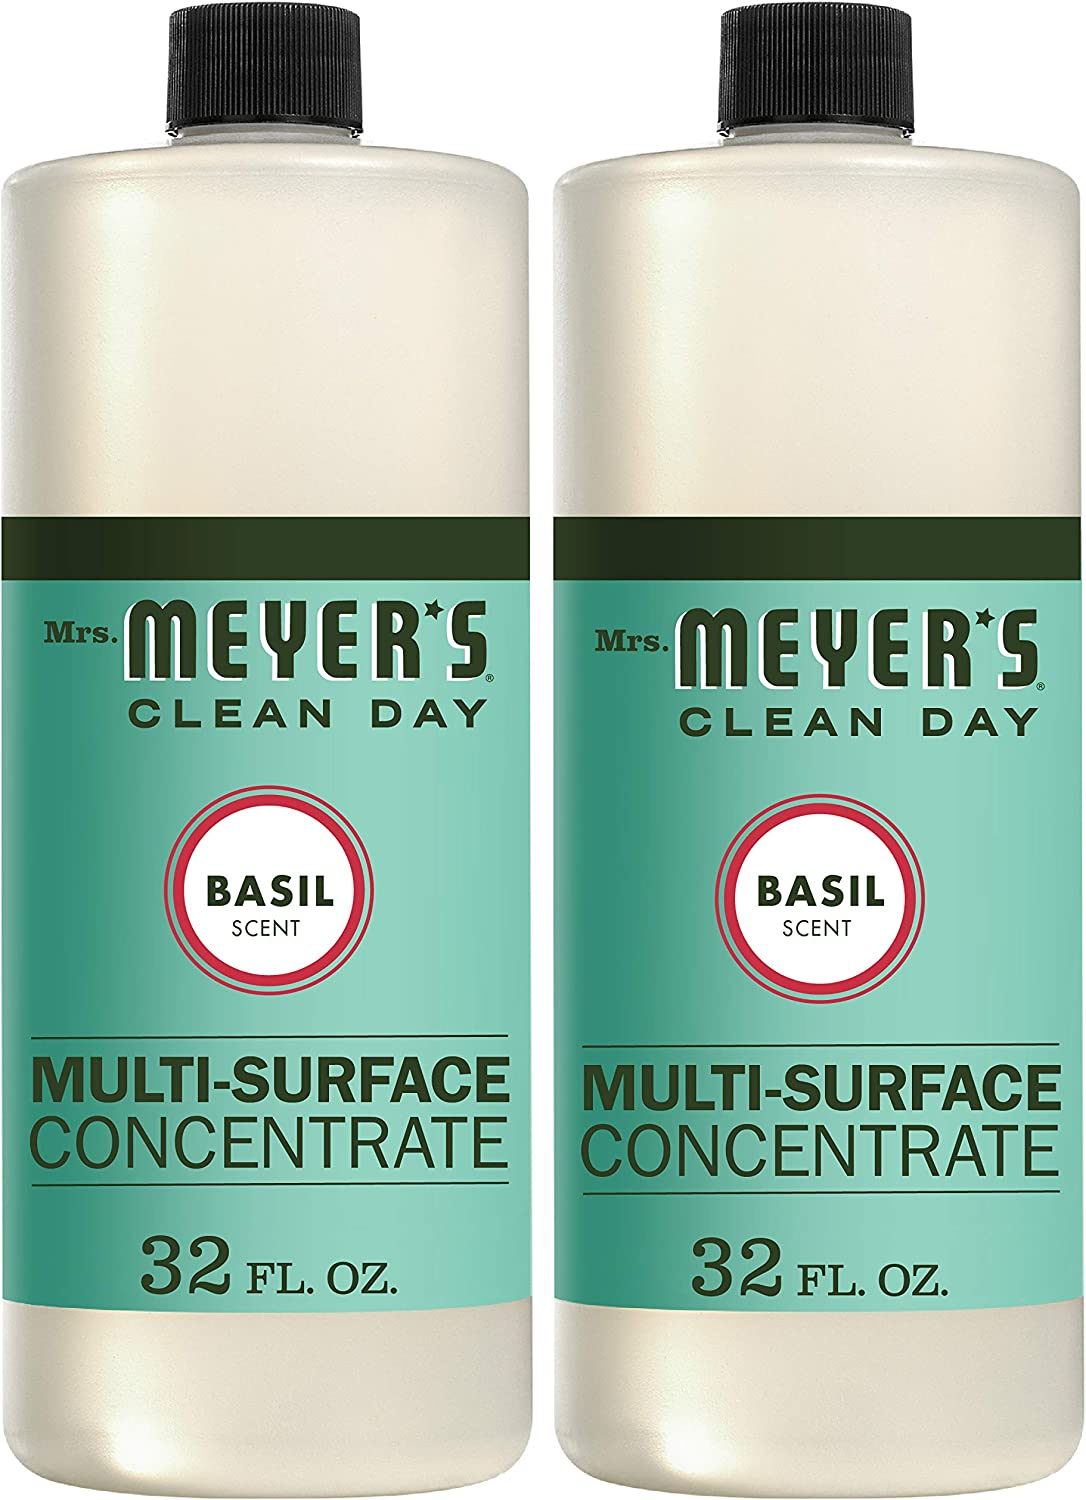 Amazon Com Mrs Meyer S Clean Day Multi Surface Cleaner Concentrate Use To Clean Floors Tile Counters Basil Scent 32 Oz Pack Of 2 Health Personal Care